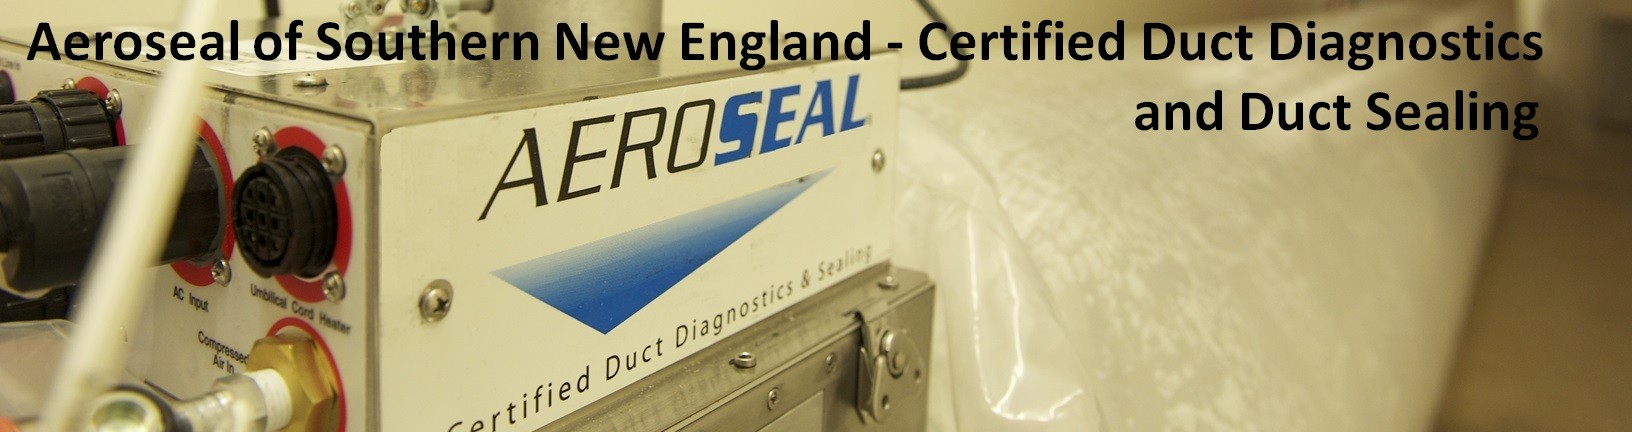 Certified Duct Diagnostics and Duct Sealing